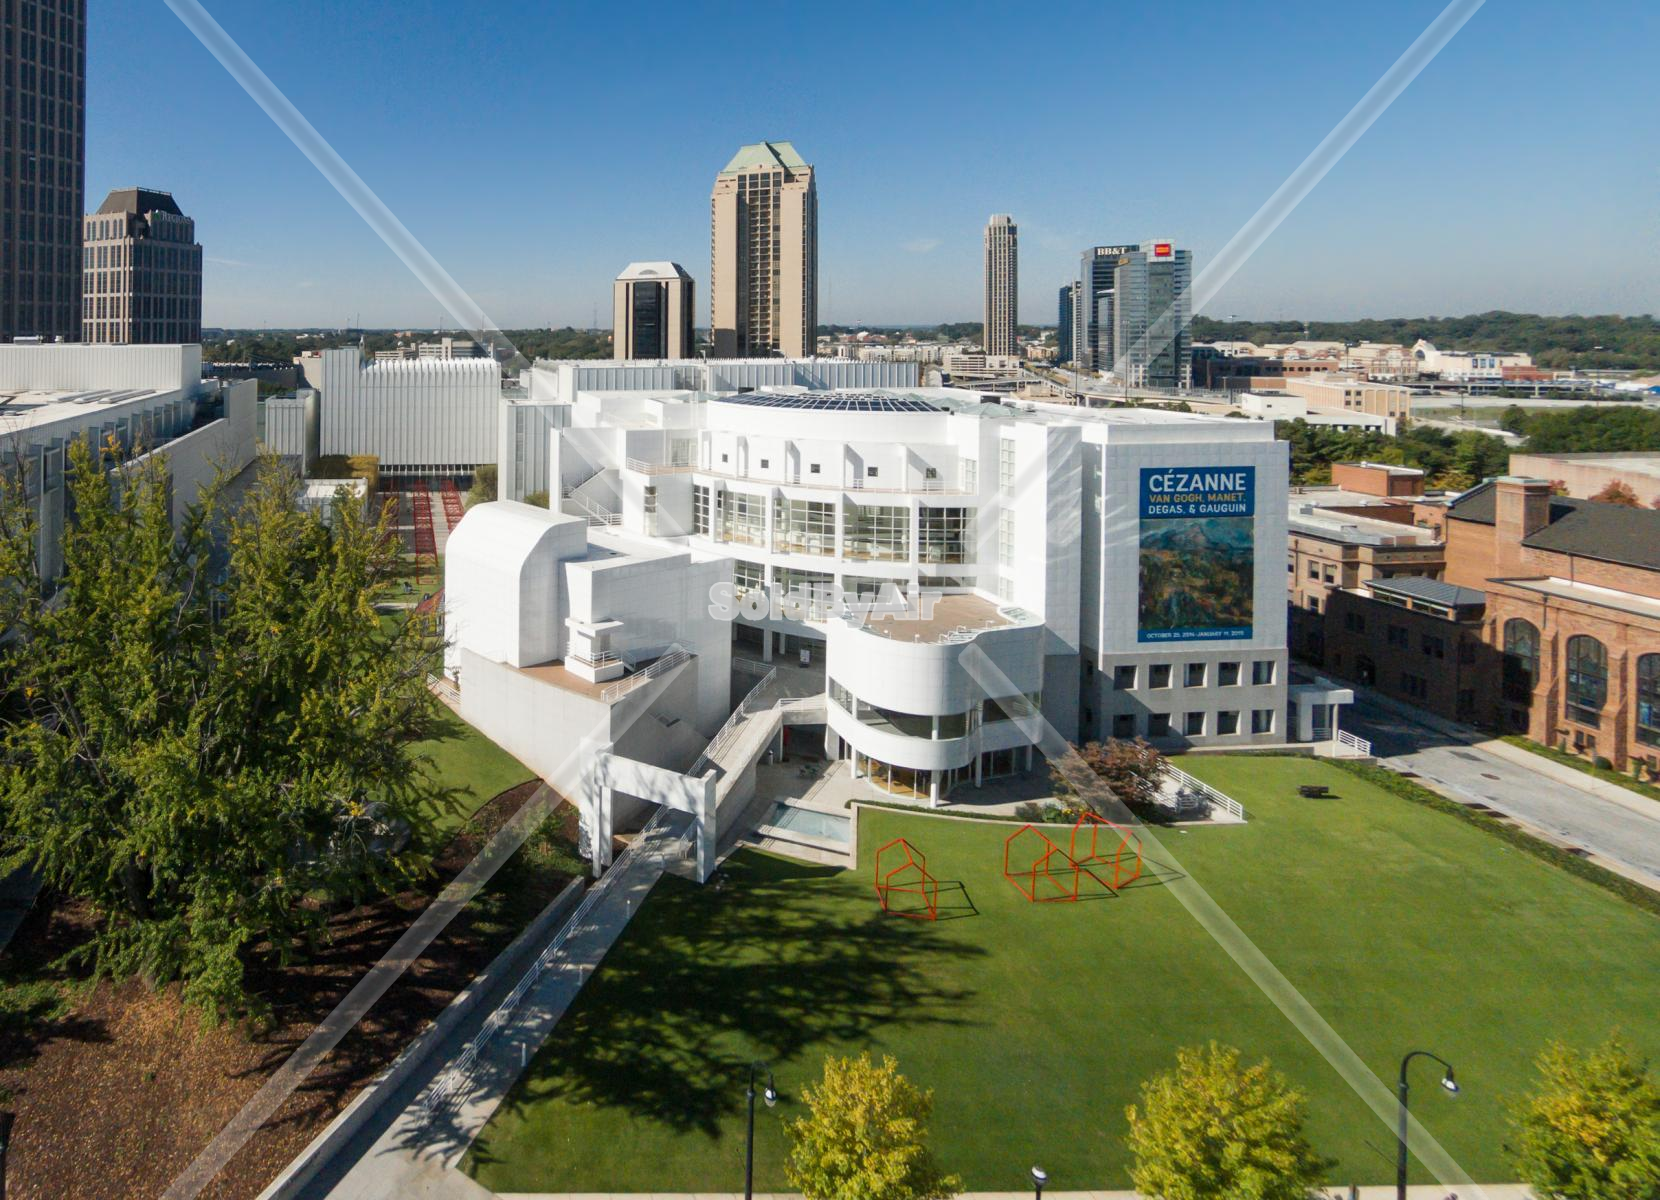 Drone Photo of High Museum of Art in Atlanta Georgia